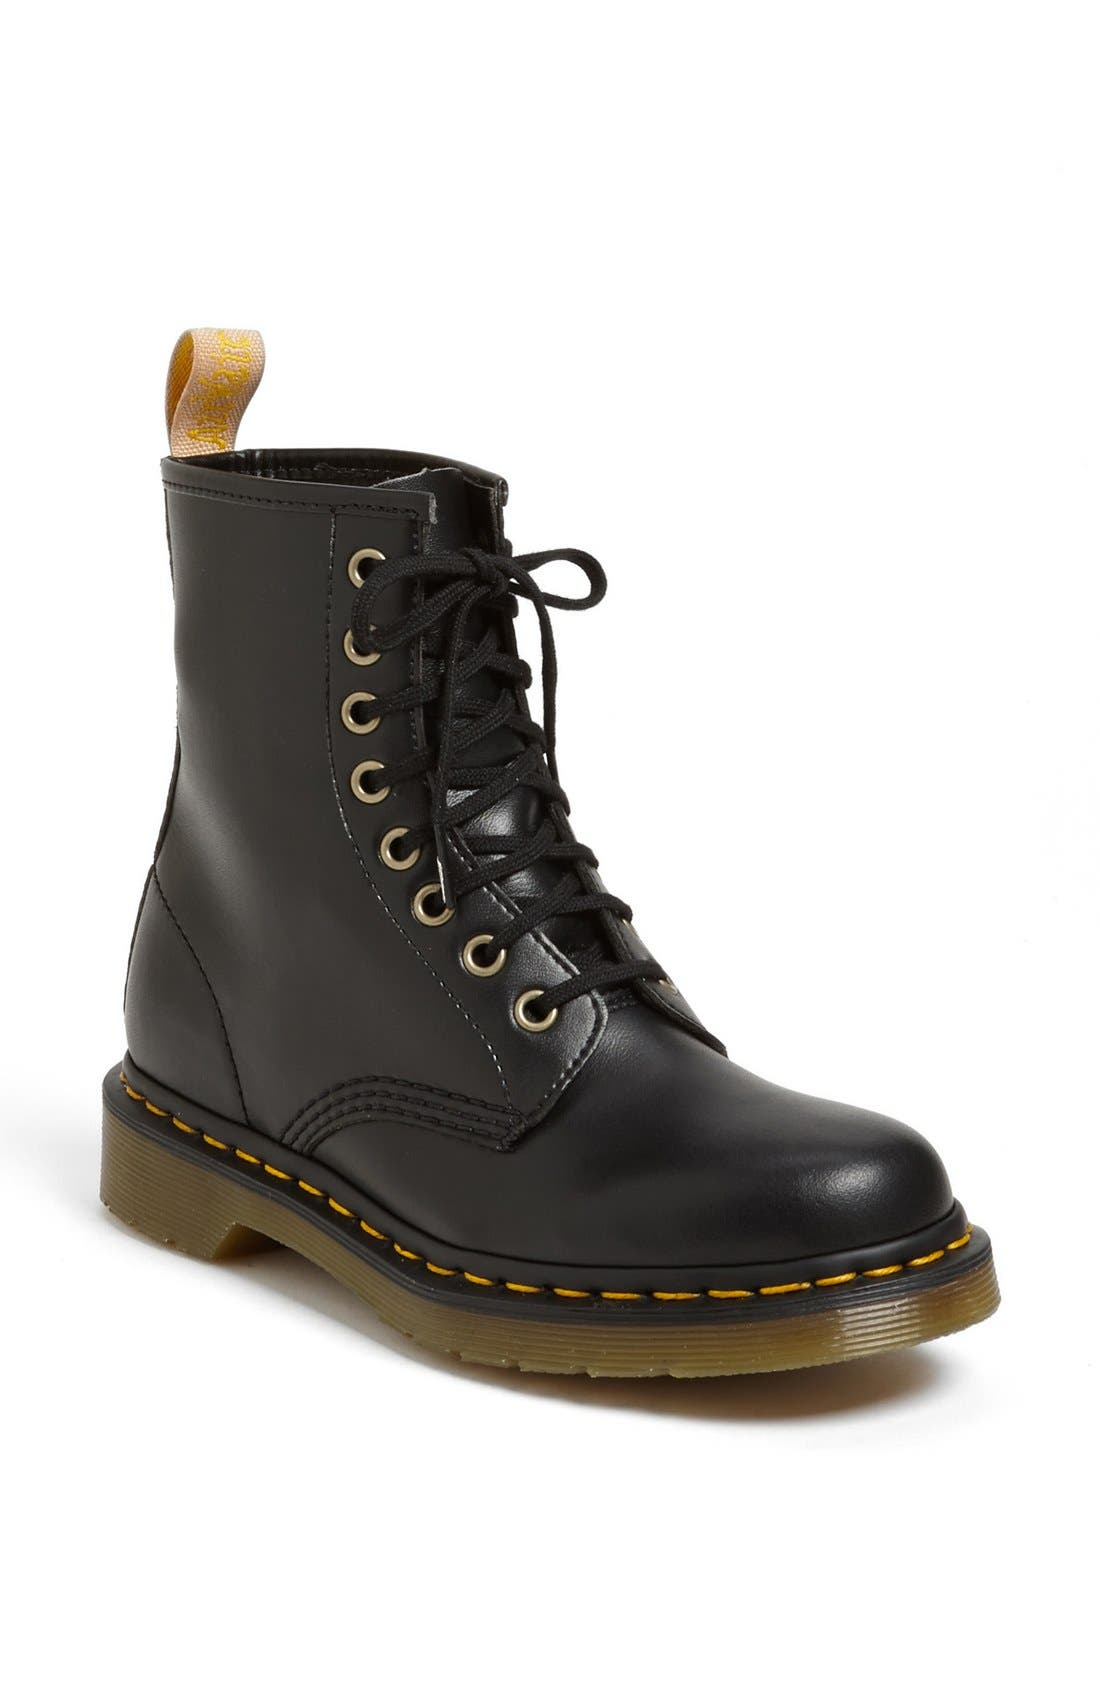 Alternate Image 1 Selected - Dr. Martens 'Vegan 1460' Boot